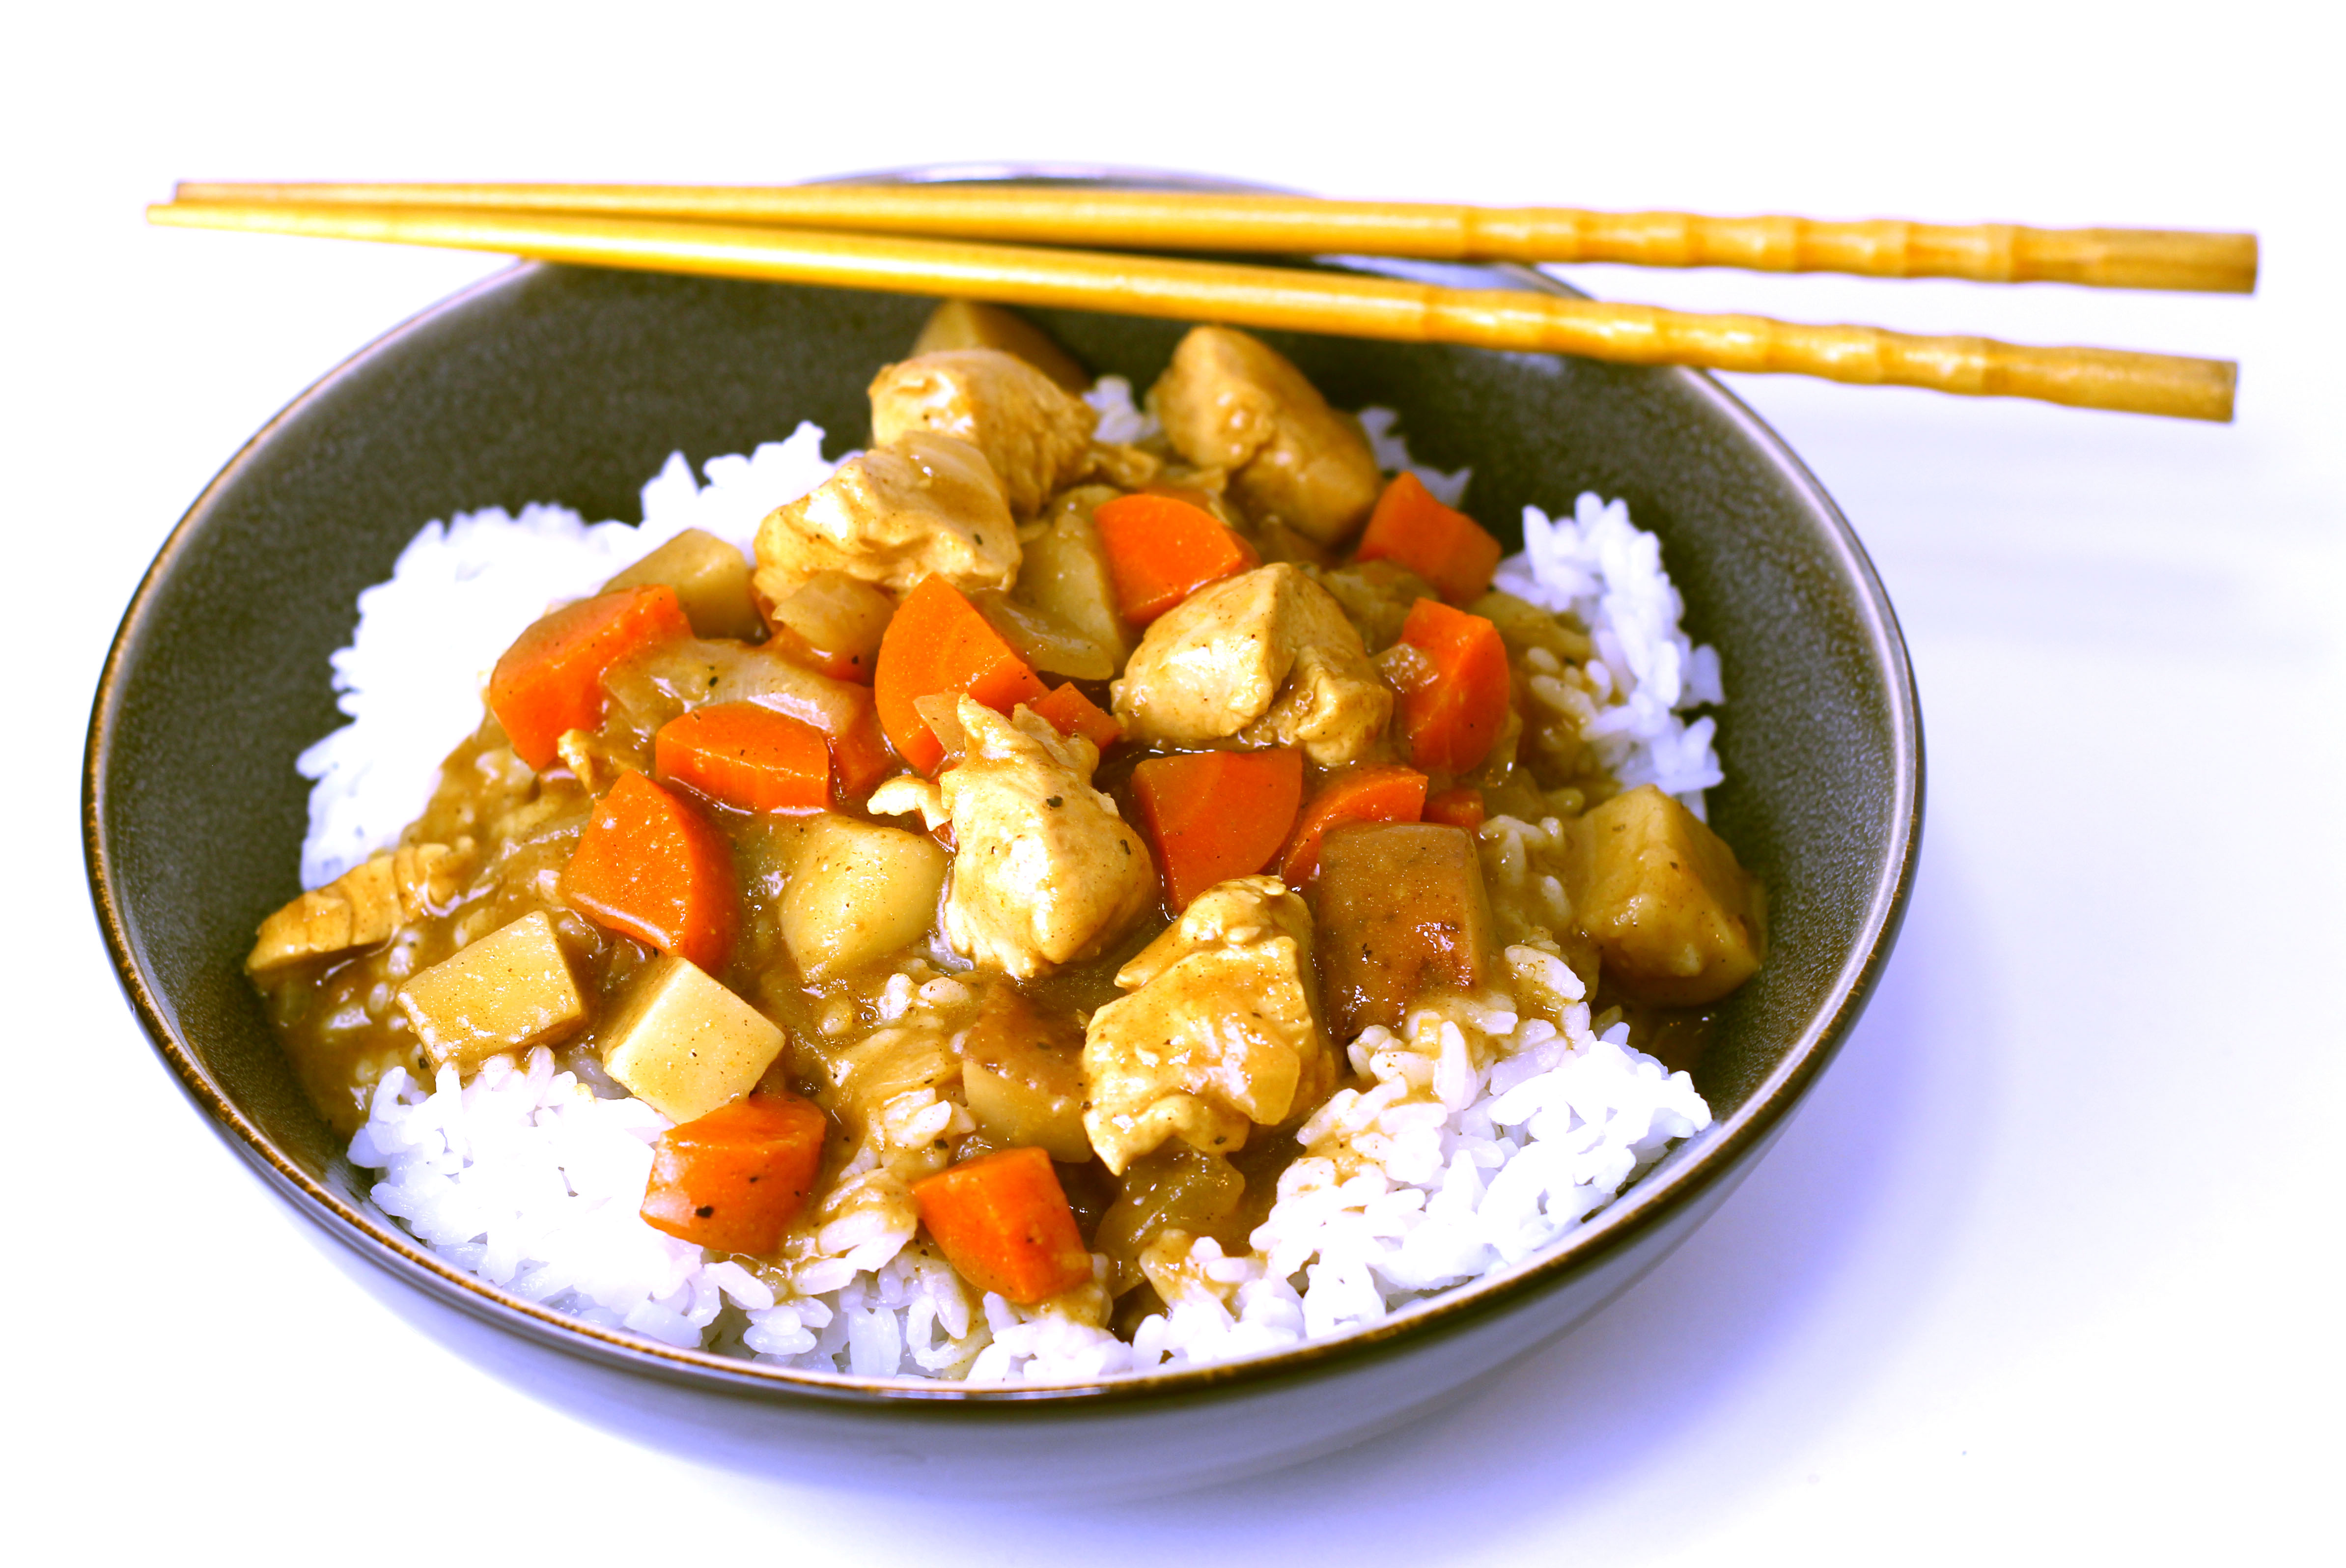 Japanese Curry with Chicken - Cooking Onions